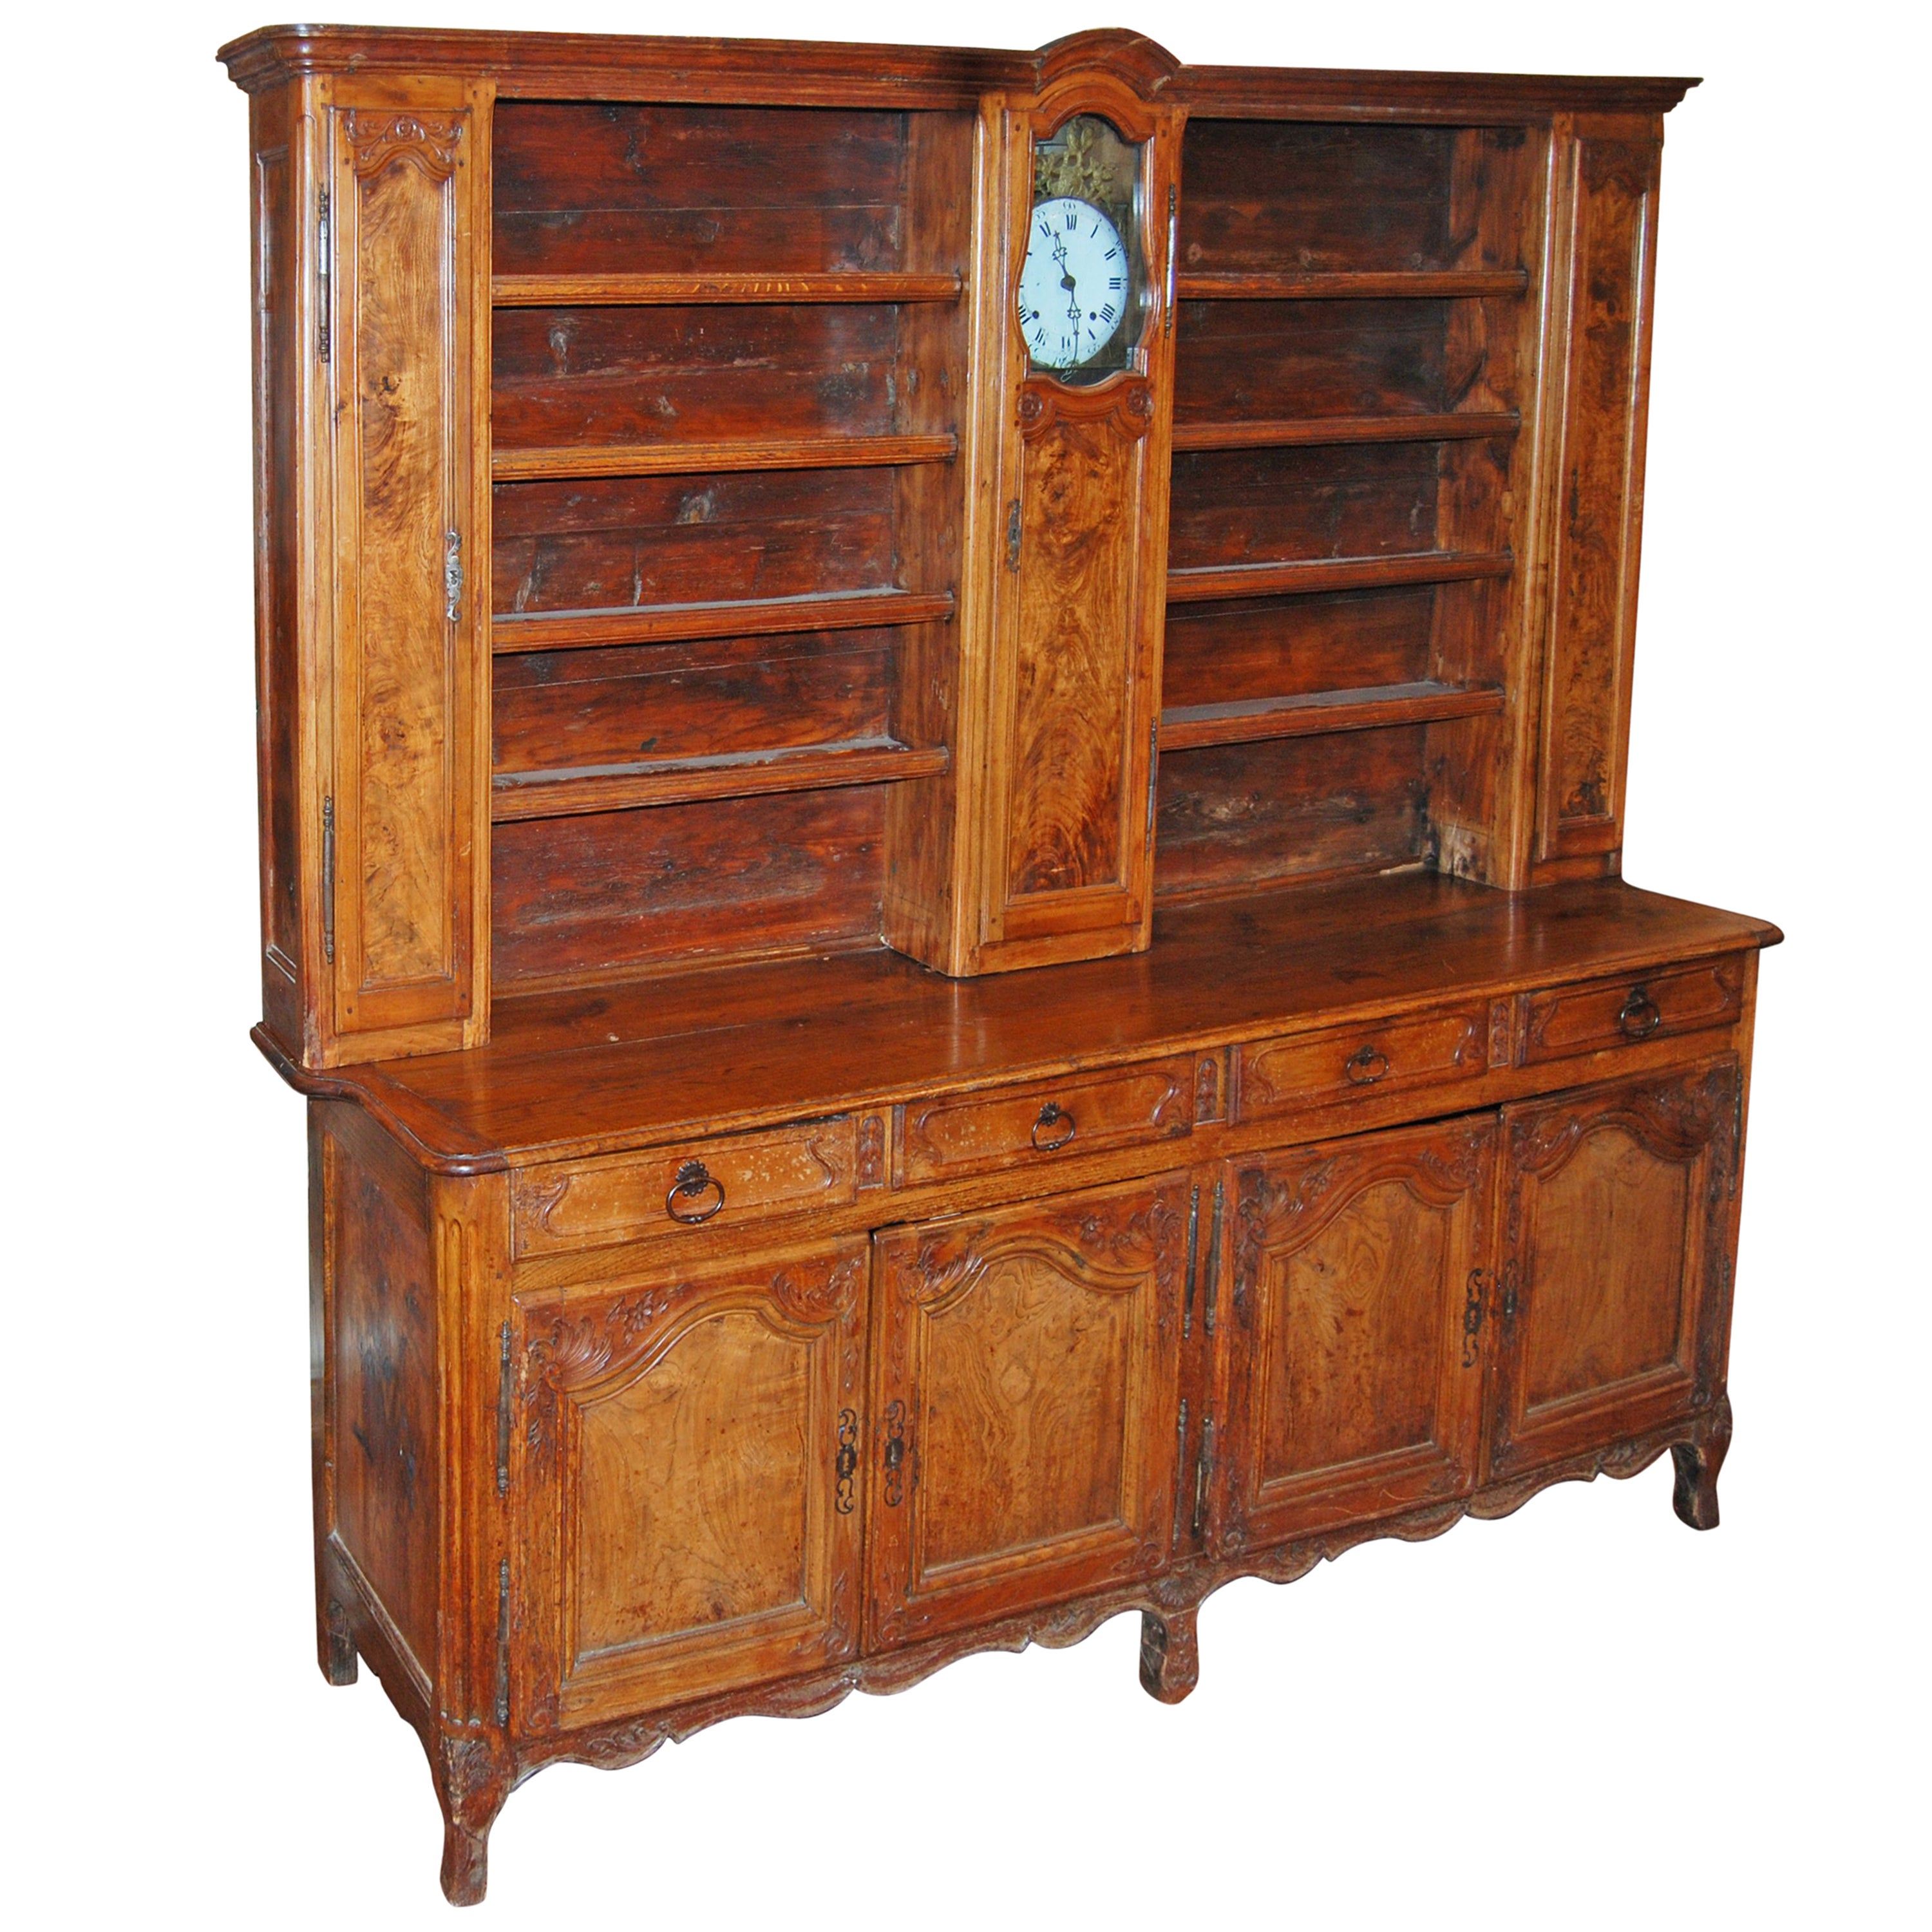 Buffets Vaisseliers 19th Century French Walnut Rustic Buffet Vaisselier With Mobilier Clock